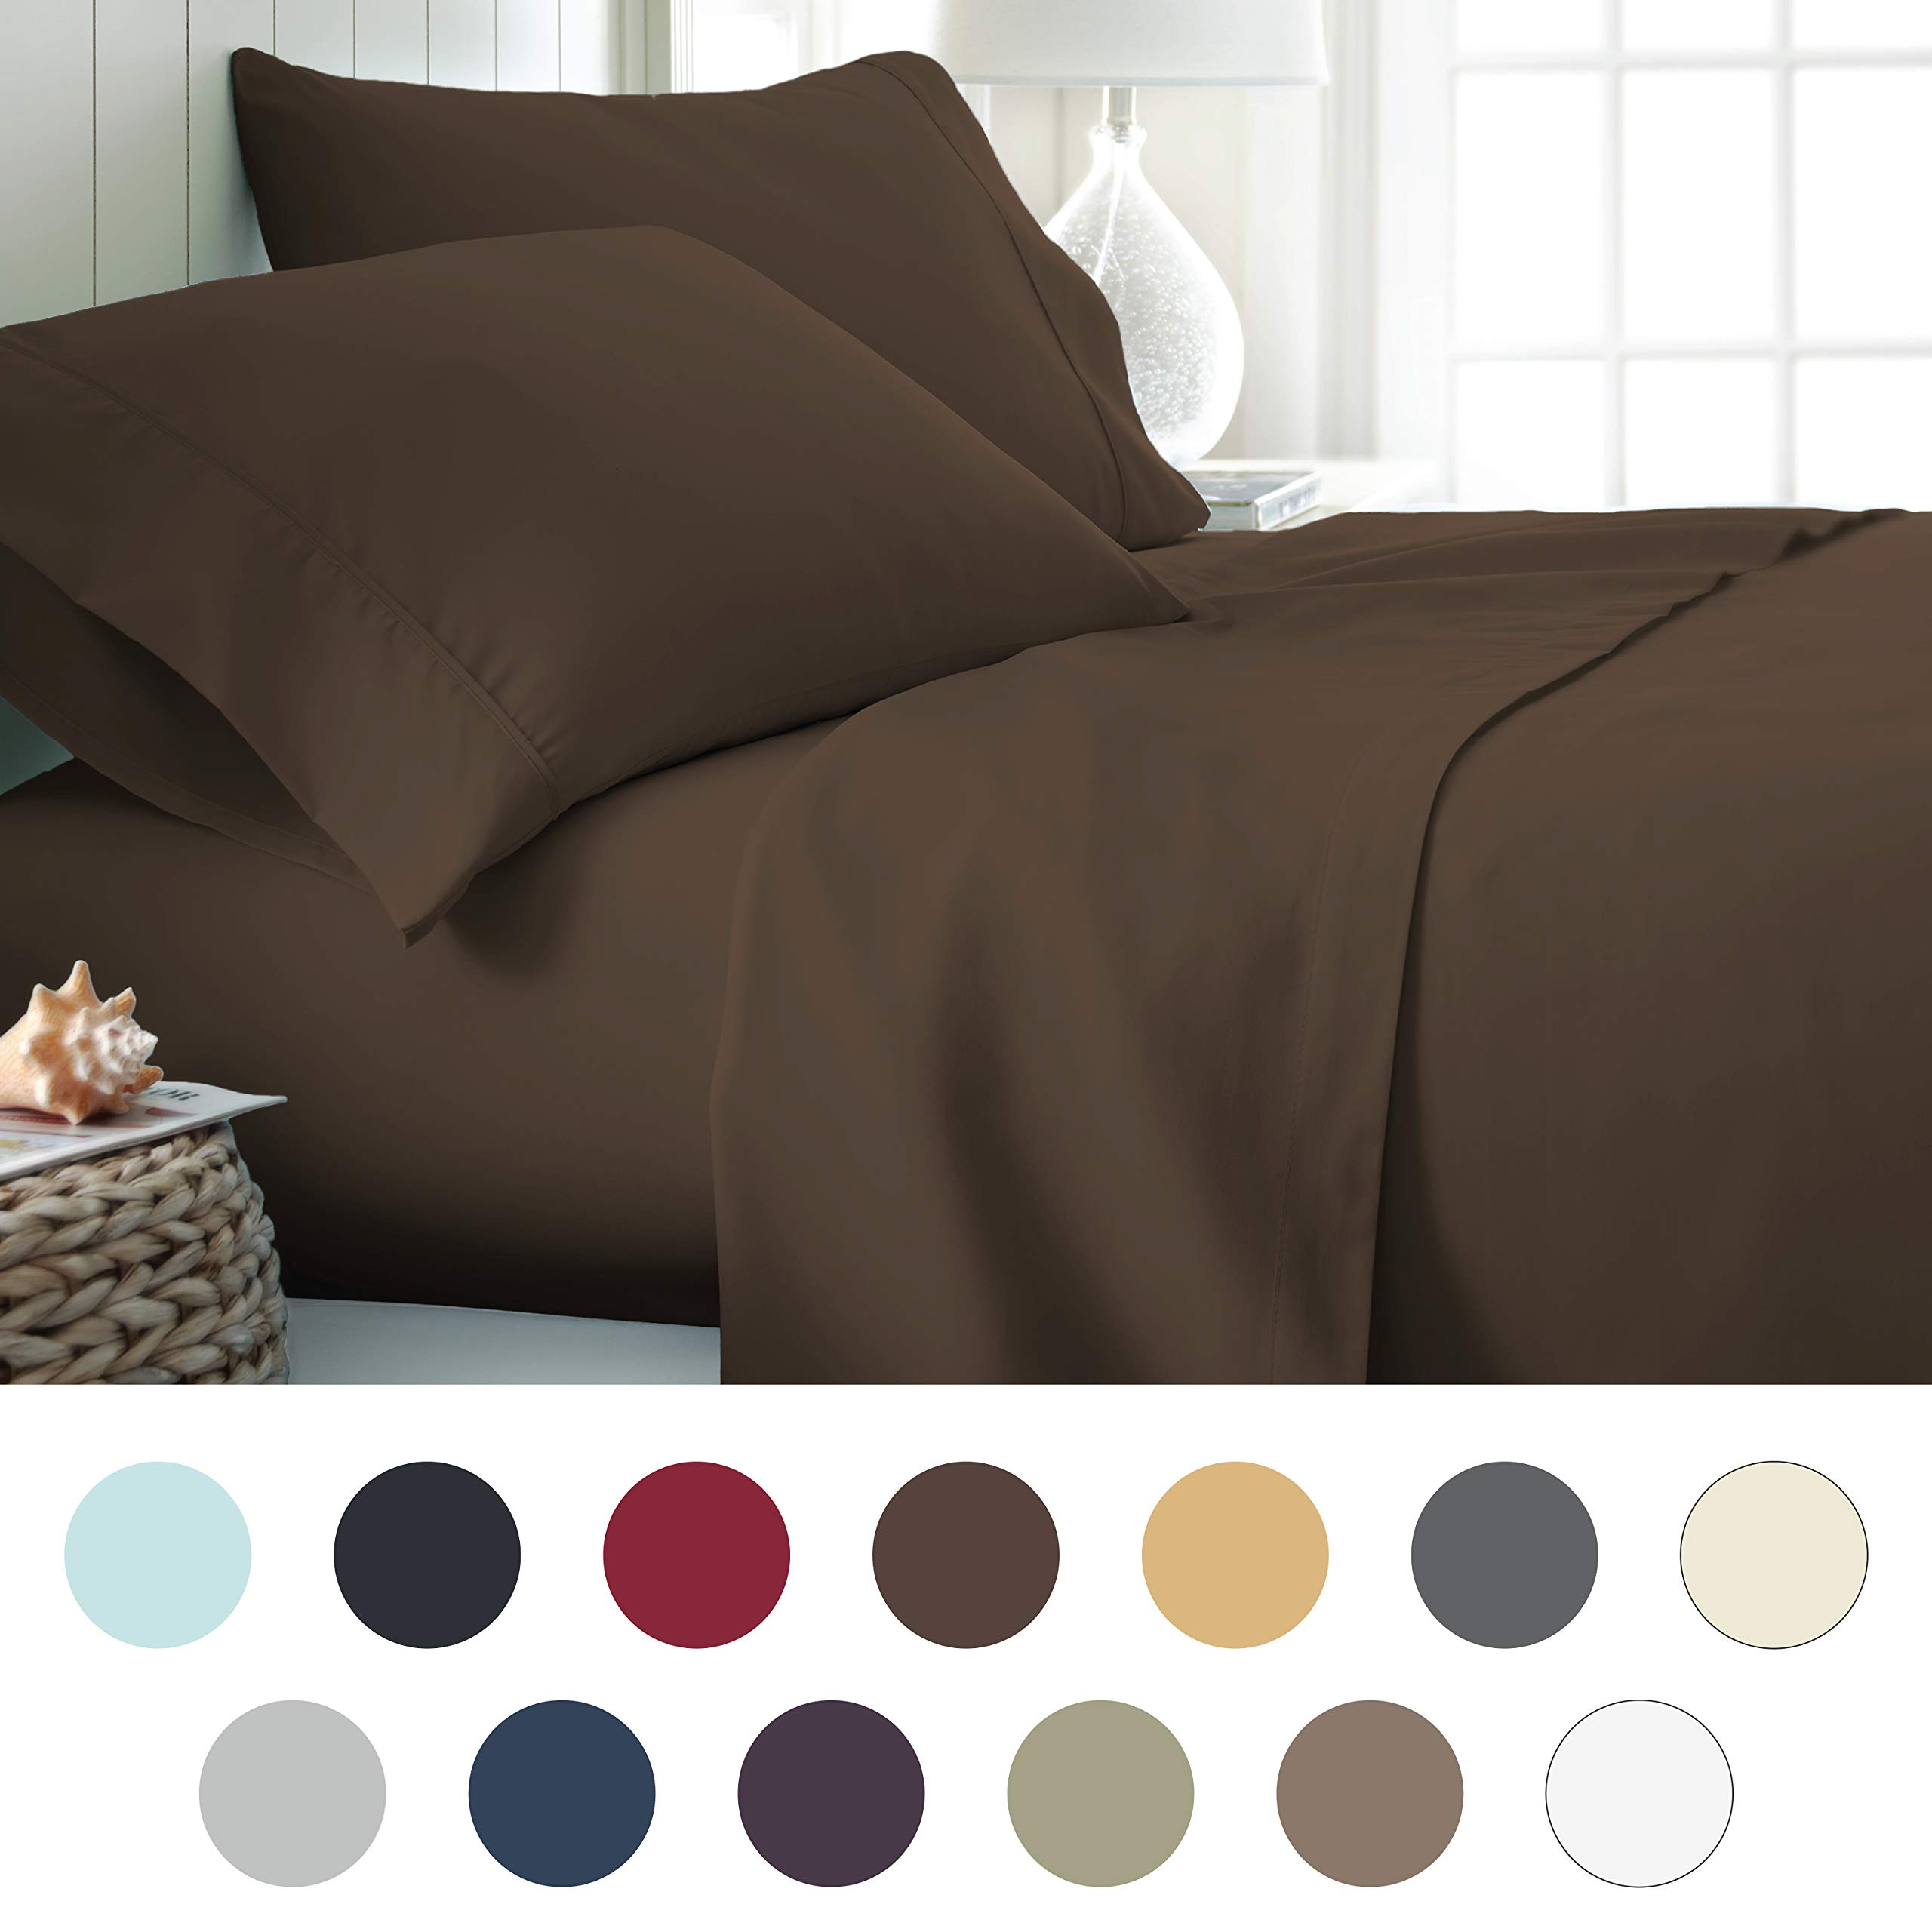 ienjoy Home Hotel Collection Luxury Soft Brushed Bed Sheet Set, Hypoallergenic, Deep Pocket, Queen, Chocolate